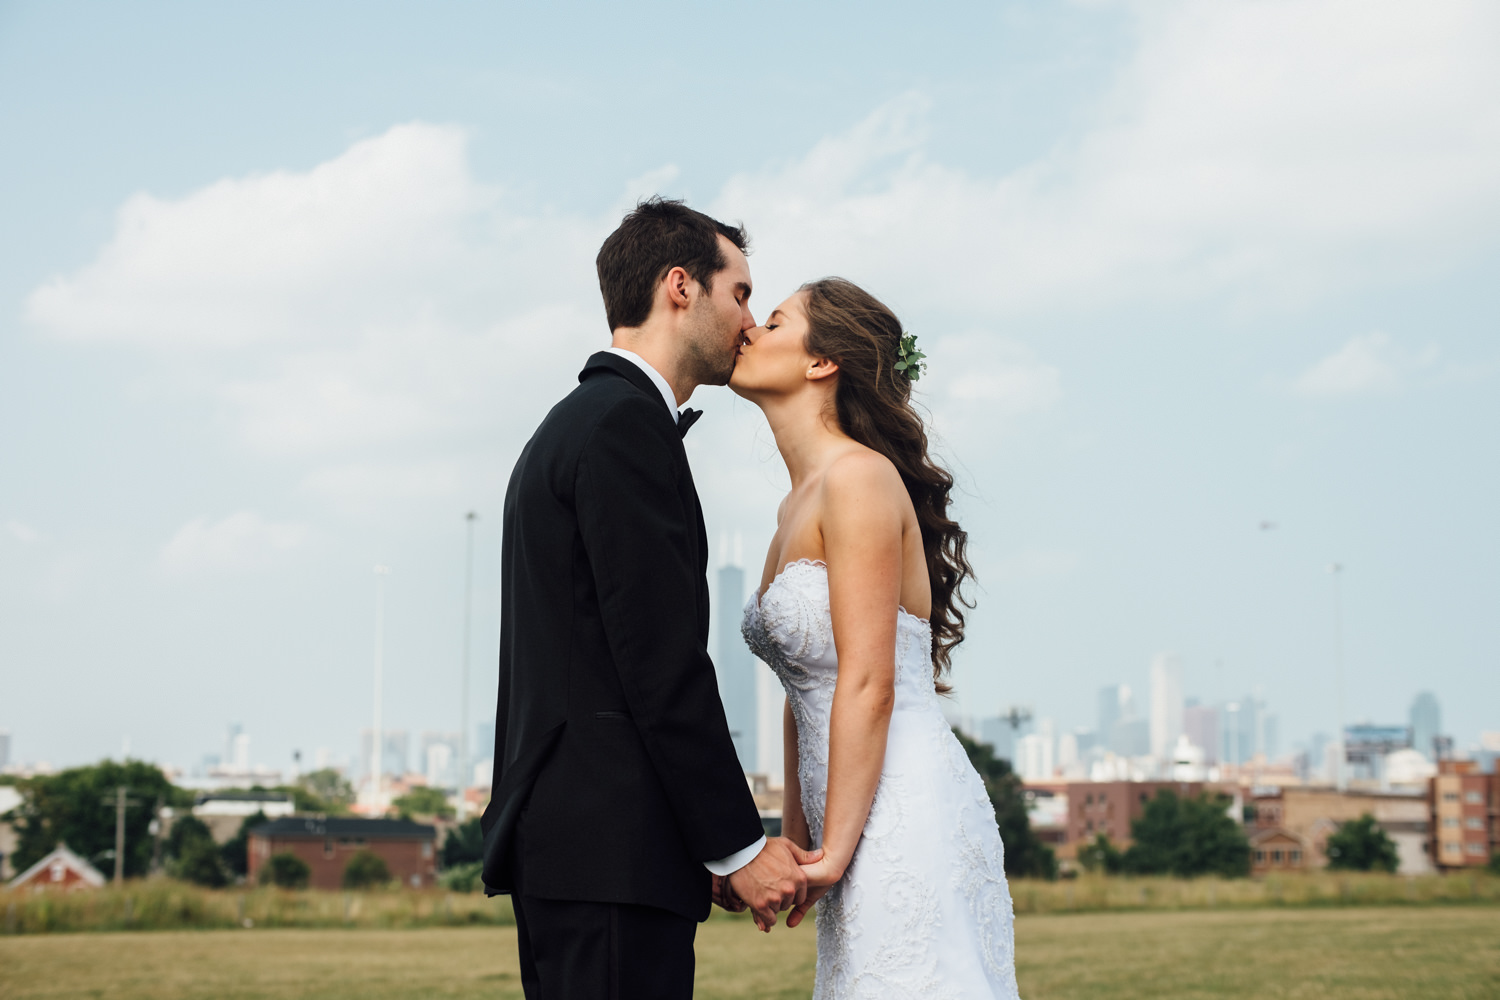 Romantic Bride and Groom Portrait Chicago Wedding Cling & Peck